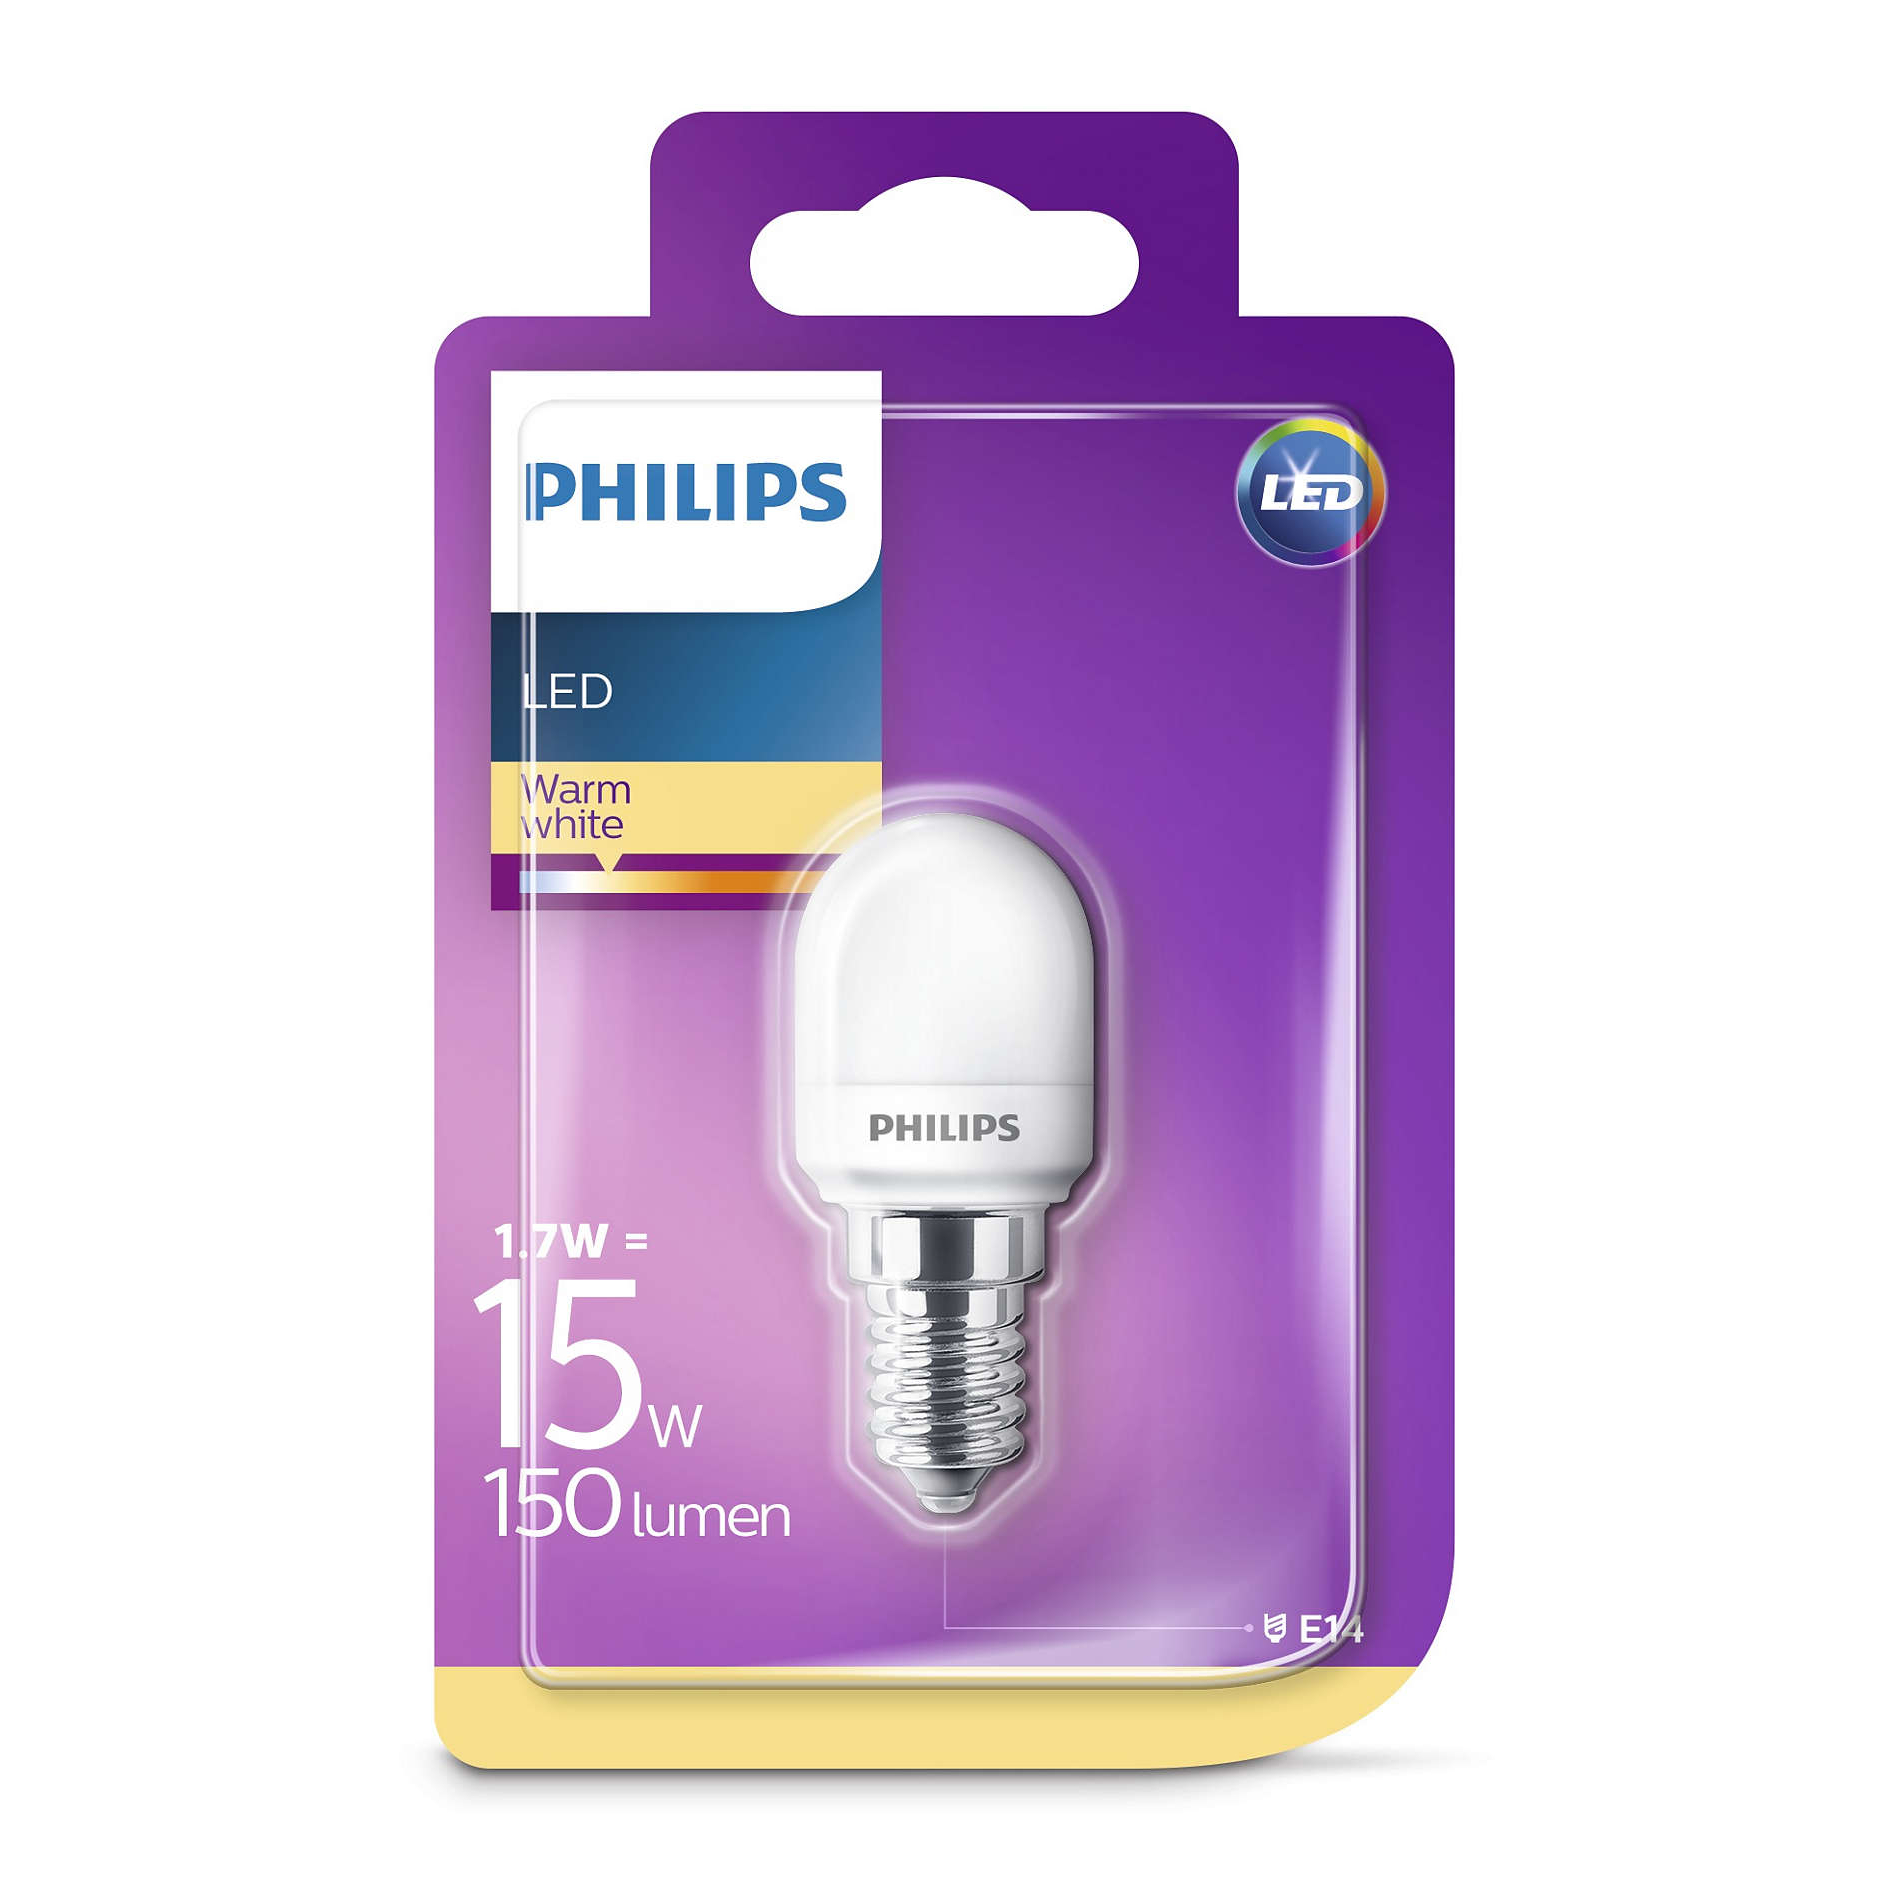 E14 Led Philips Details About Philips Led T25 Frosted E14 Edison 15w Appliance Fridge Freezer Light Bulb 150lm